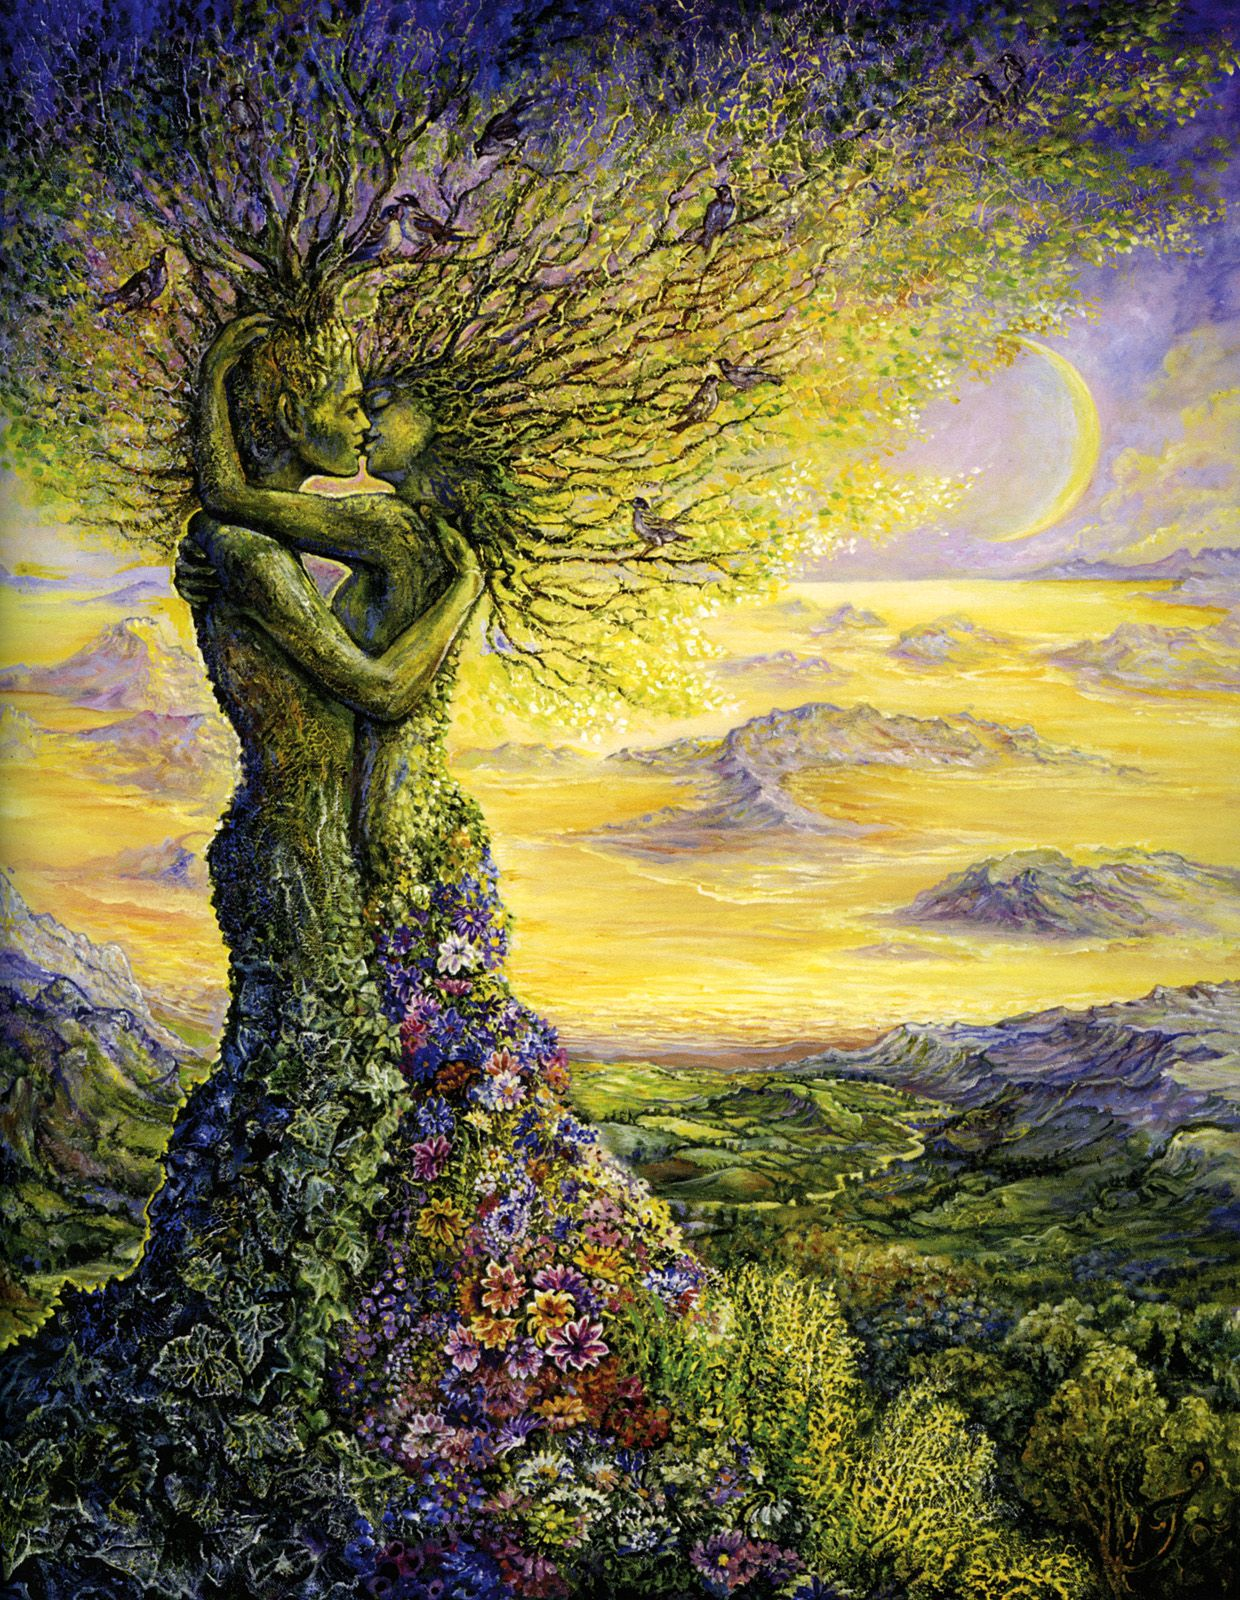 Pin by Curt Ioana on art | Pinterest | Josephine wall, Paintings and ...